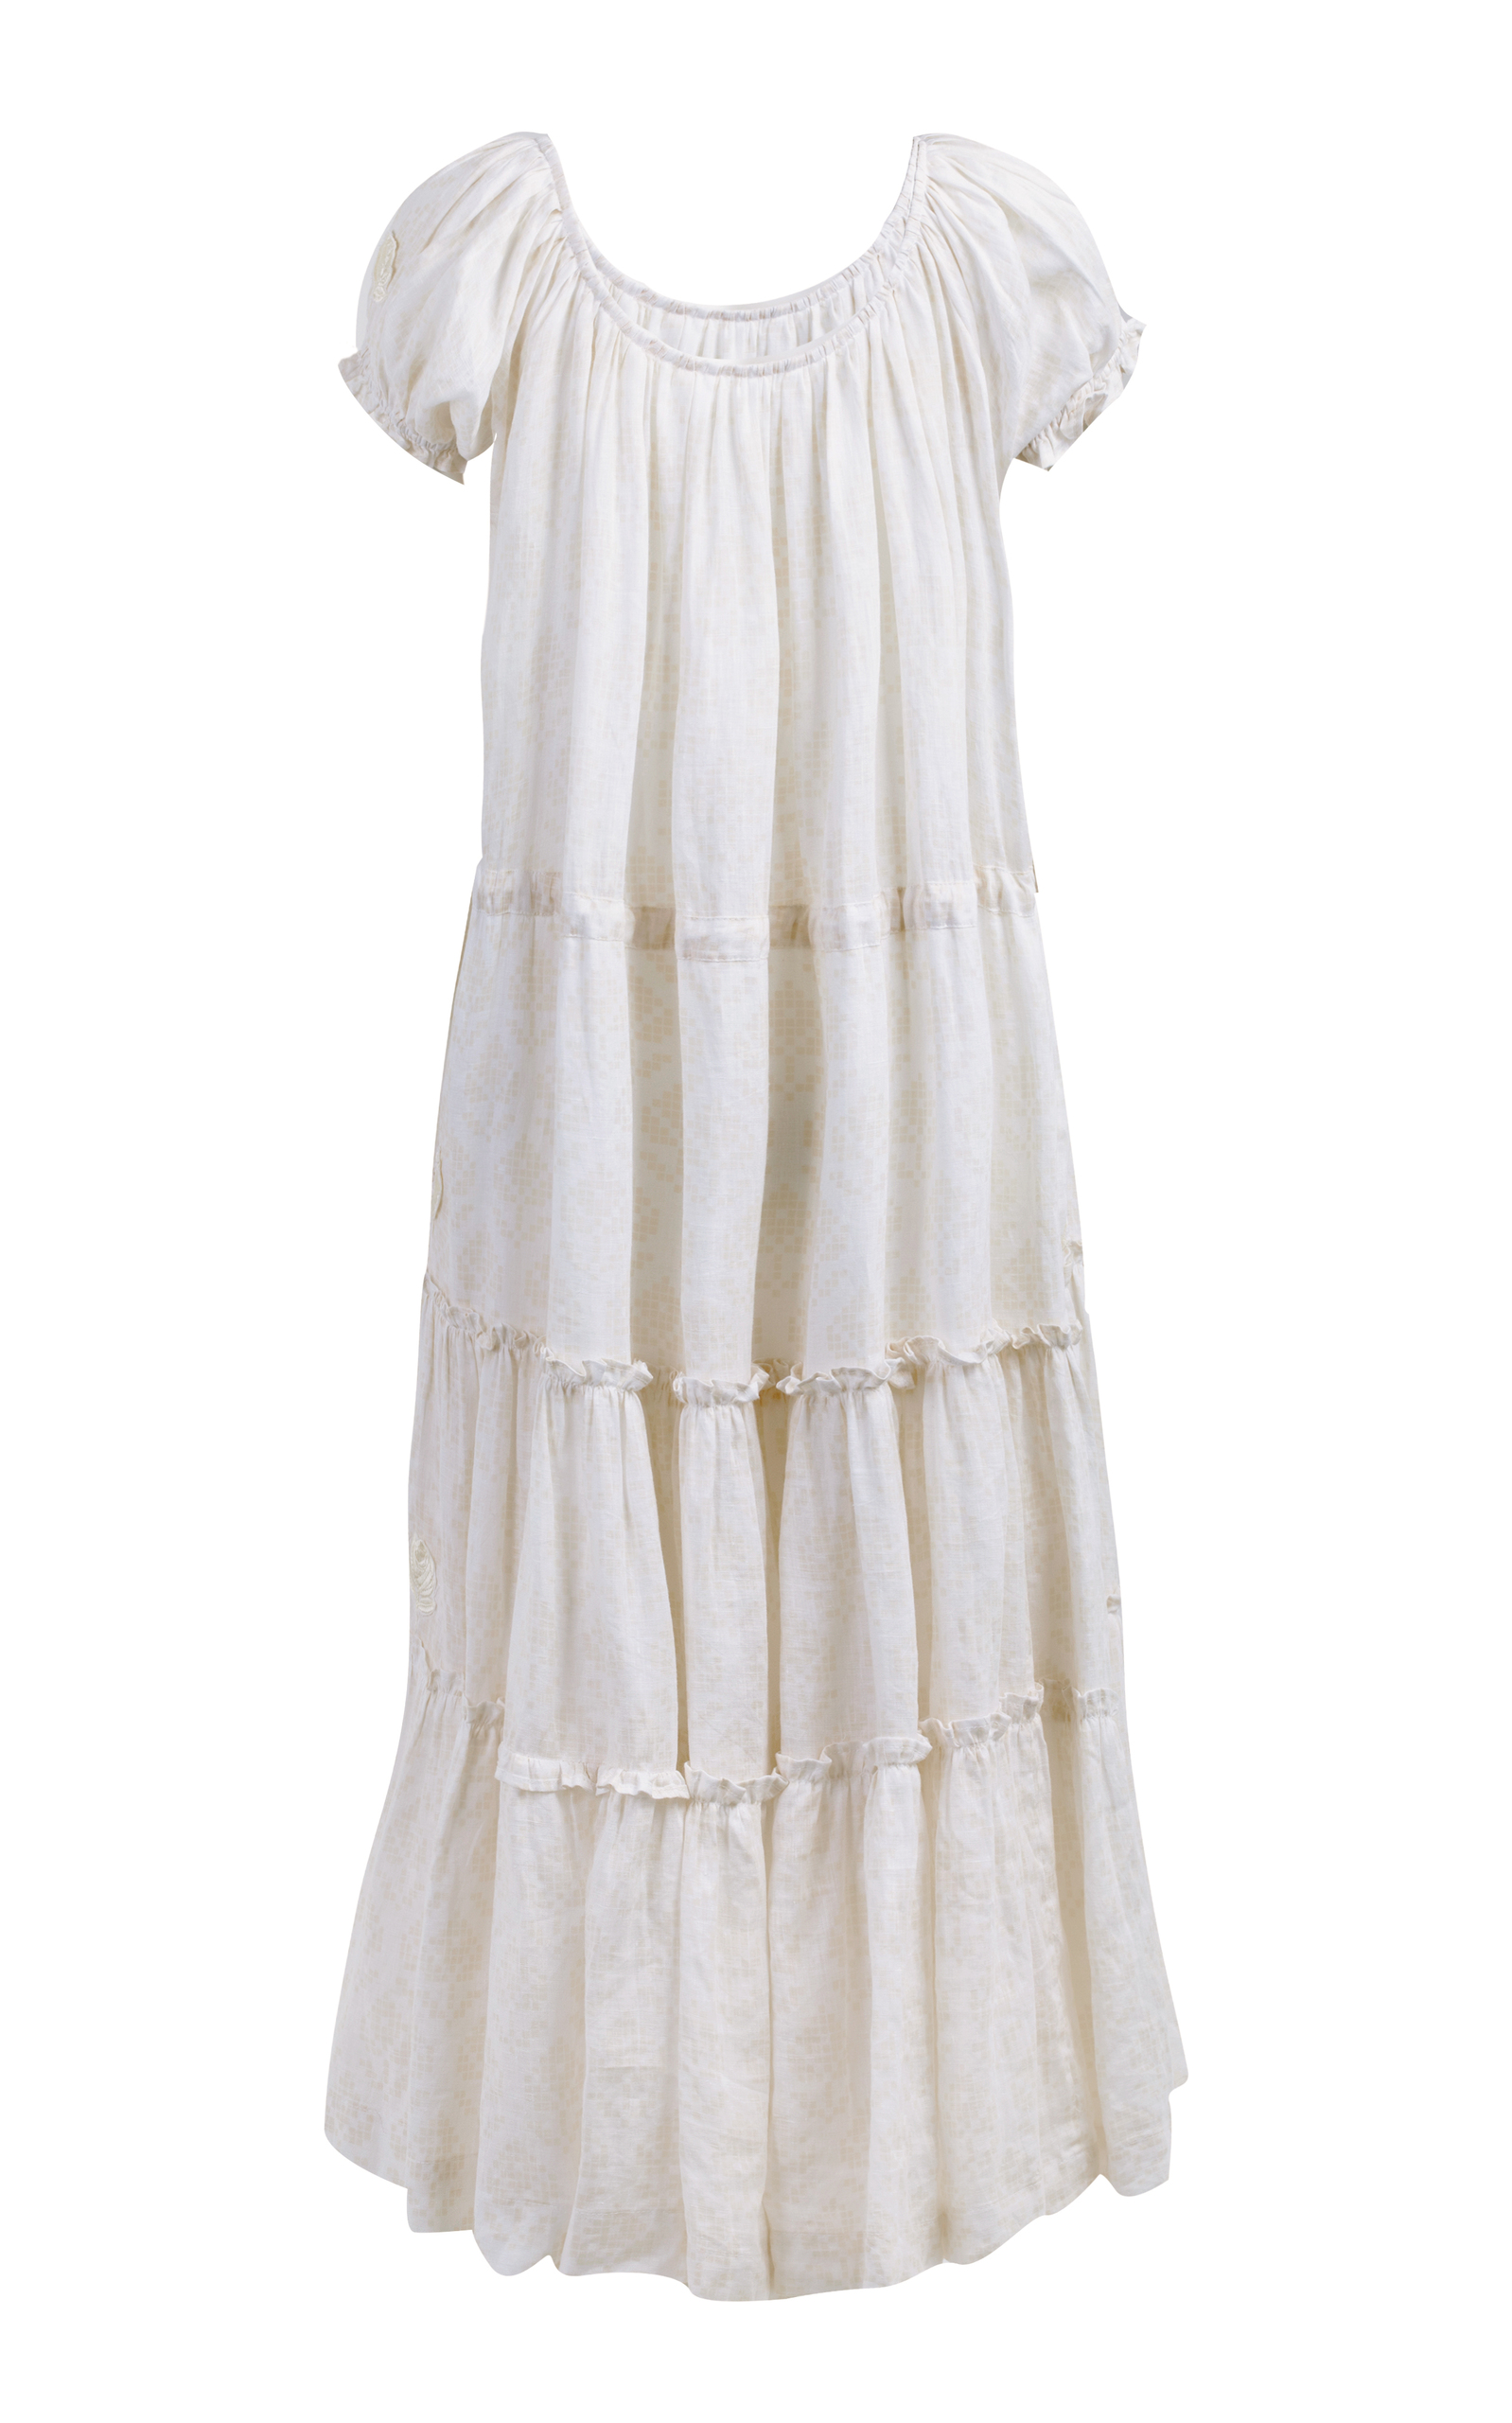 Embroidered peasant linen dress Innika Choo HVXnLNb